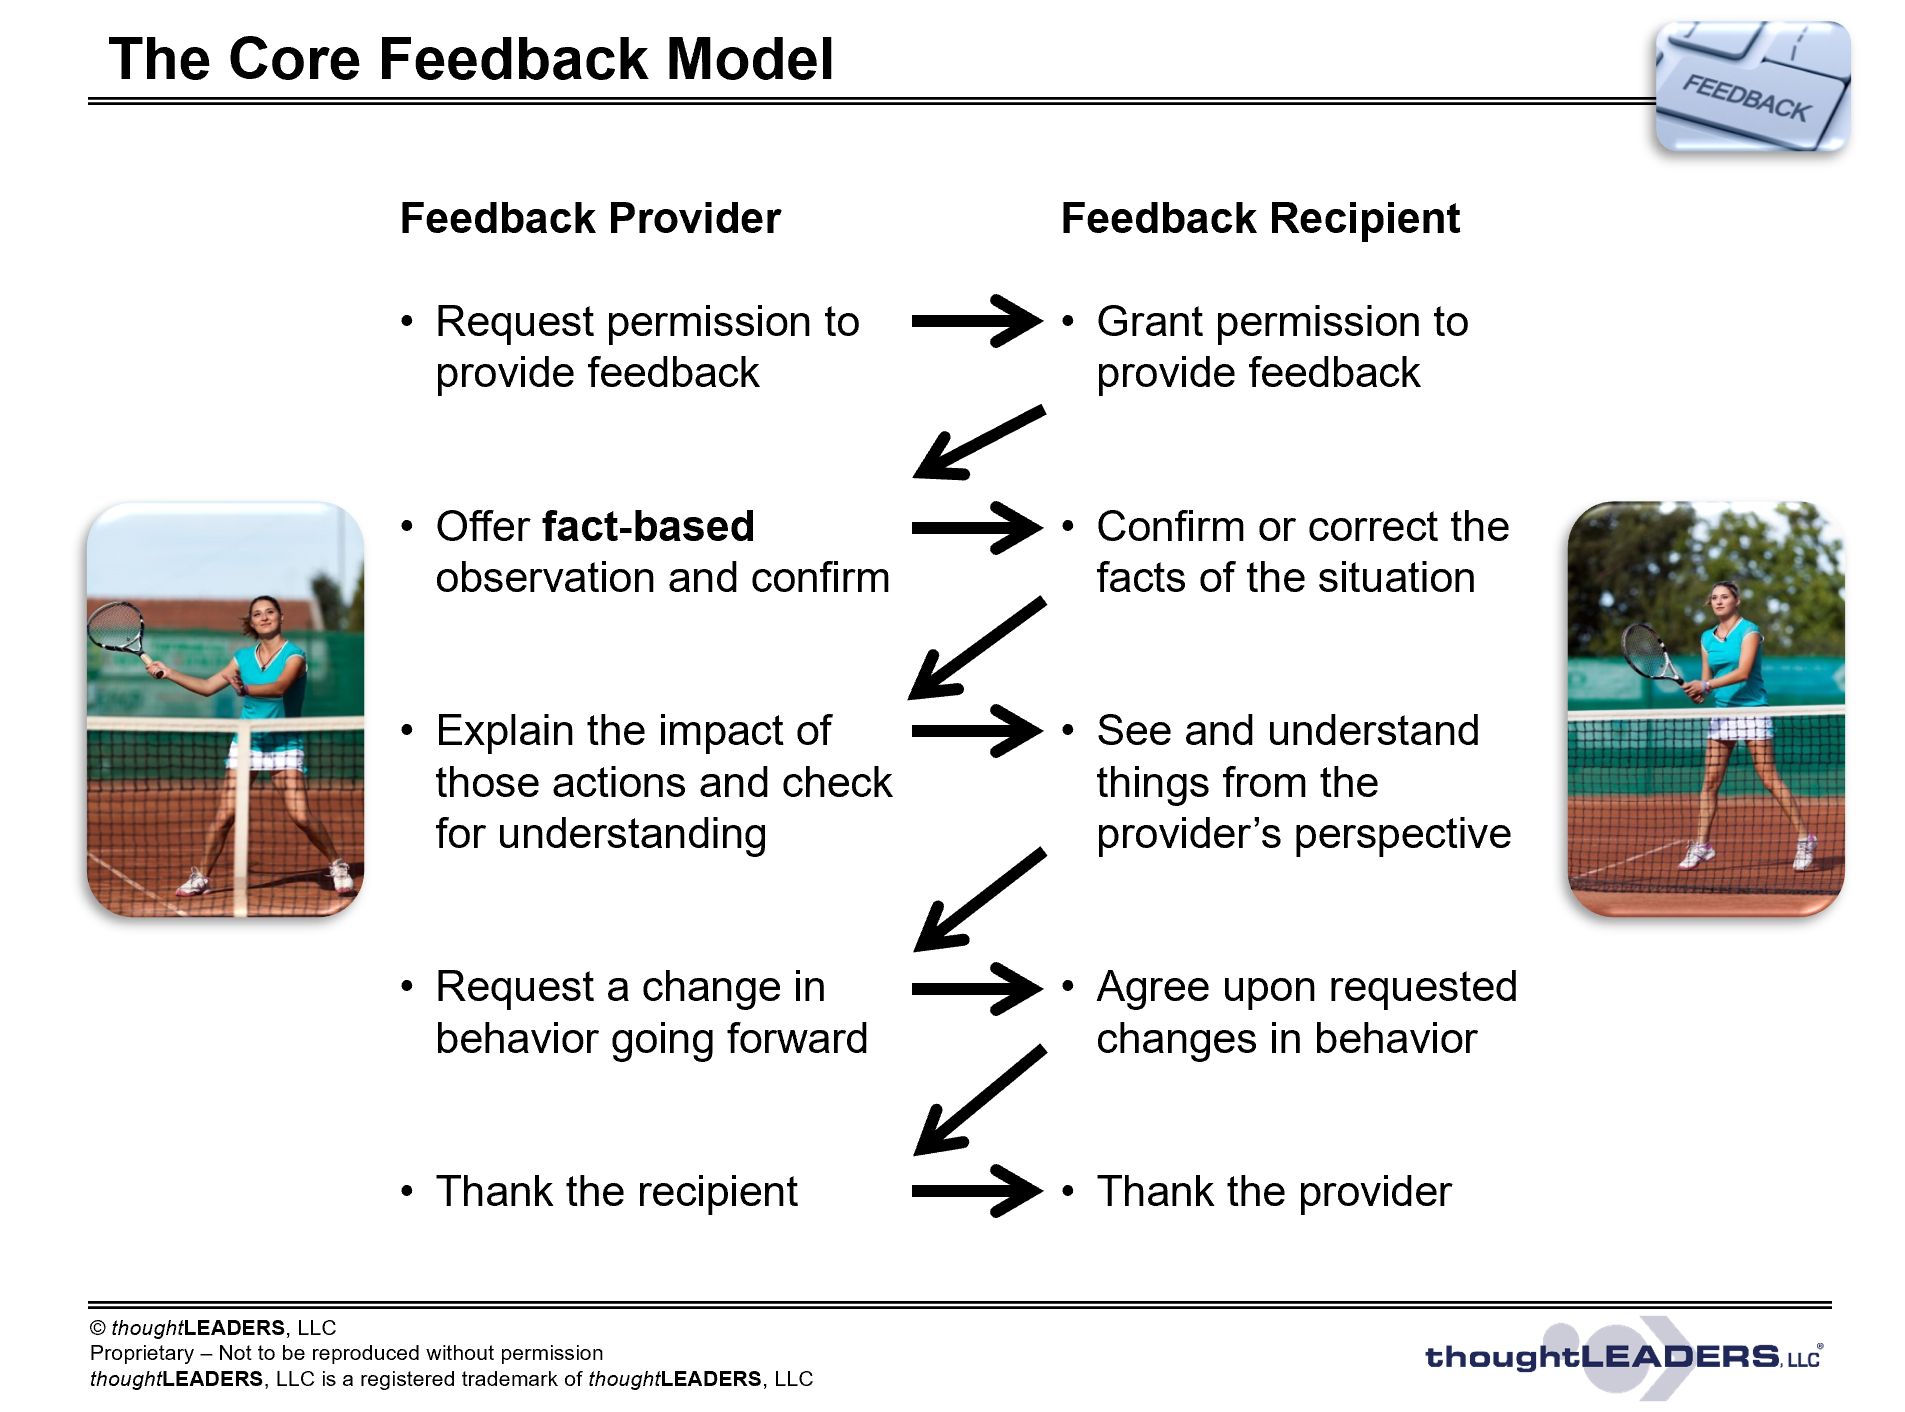 thoughtLEADERS Feedback Model Example